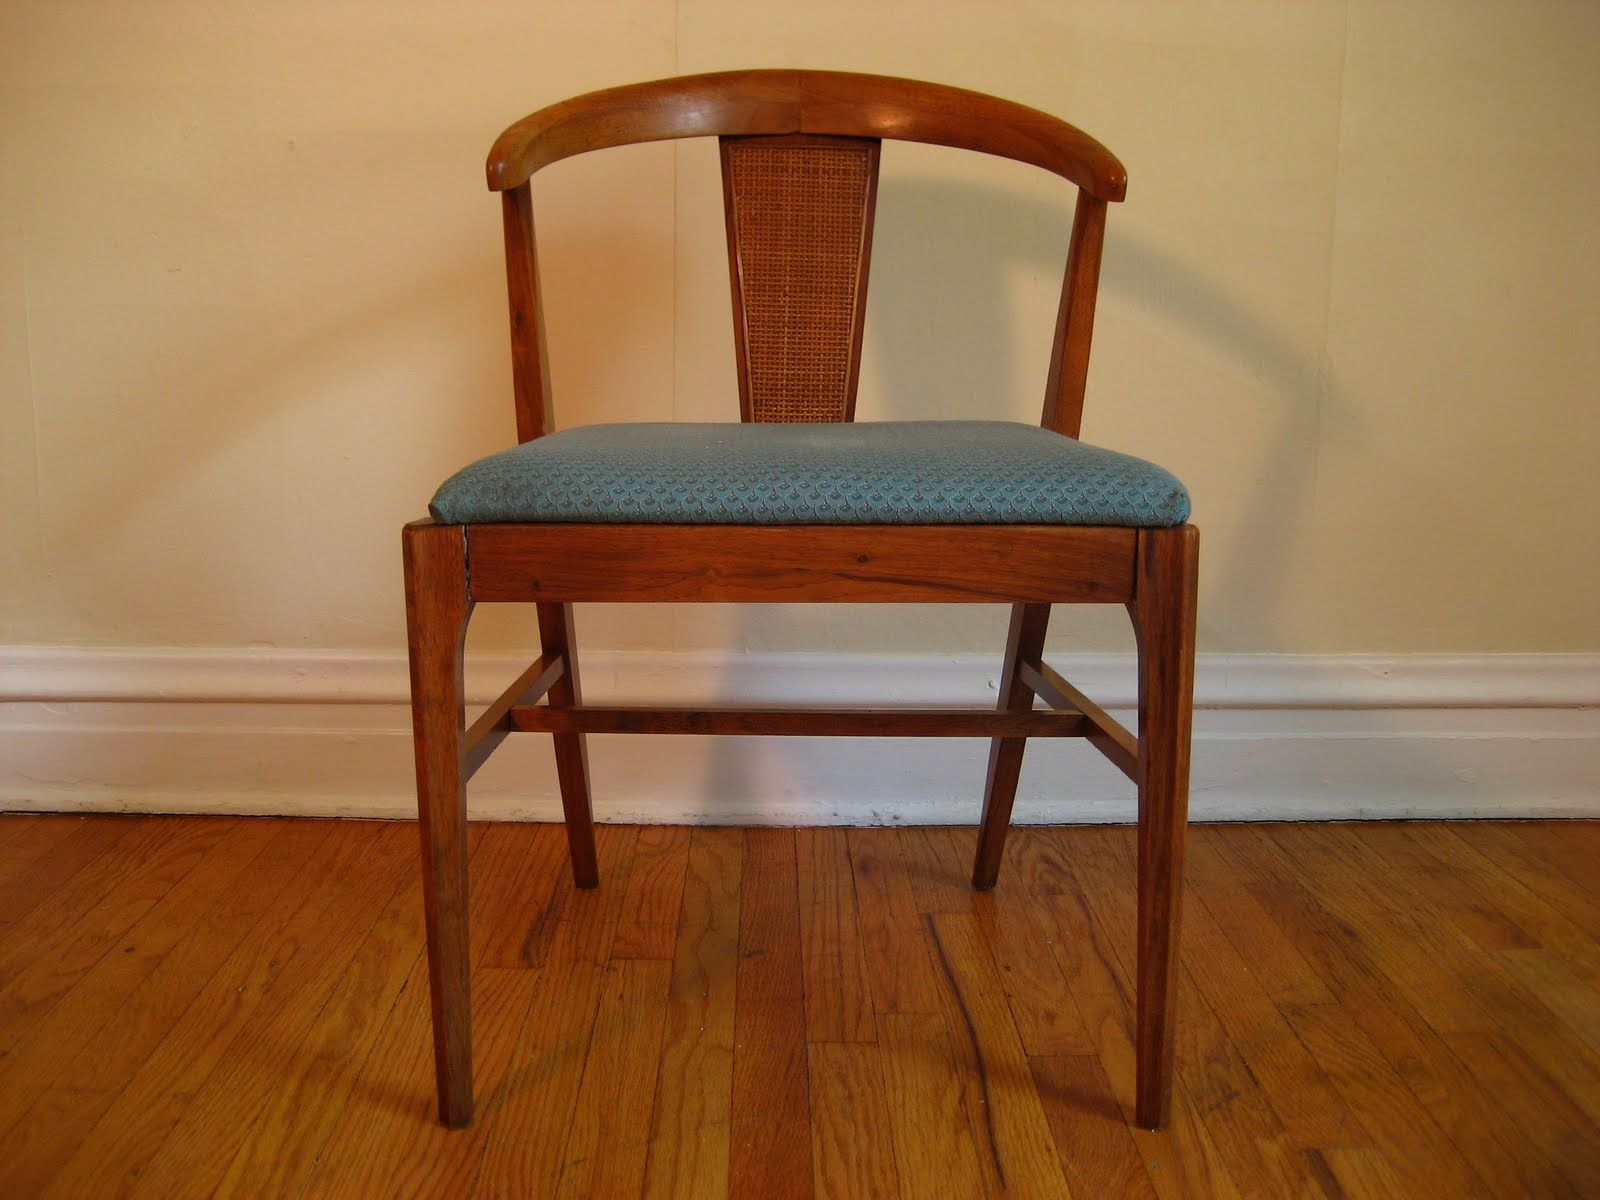 red mid century modern dining chair-#red #mid #century #modern #dining #chair Please Click Link To Find More Reference,,, ENJOY!!